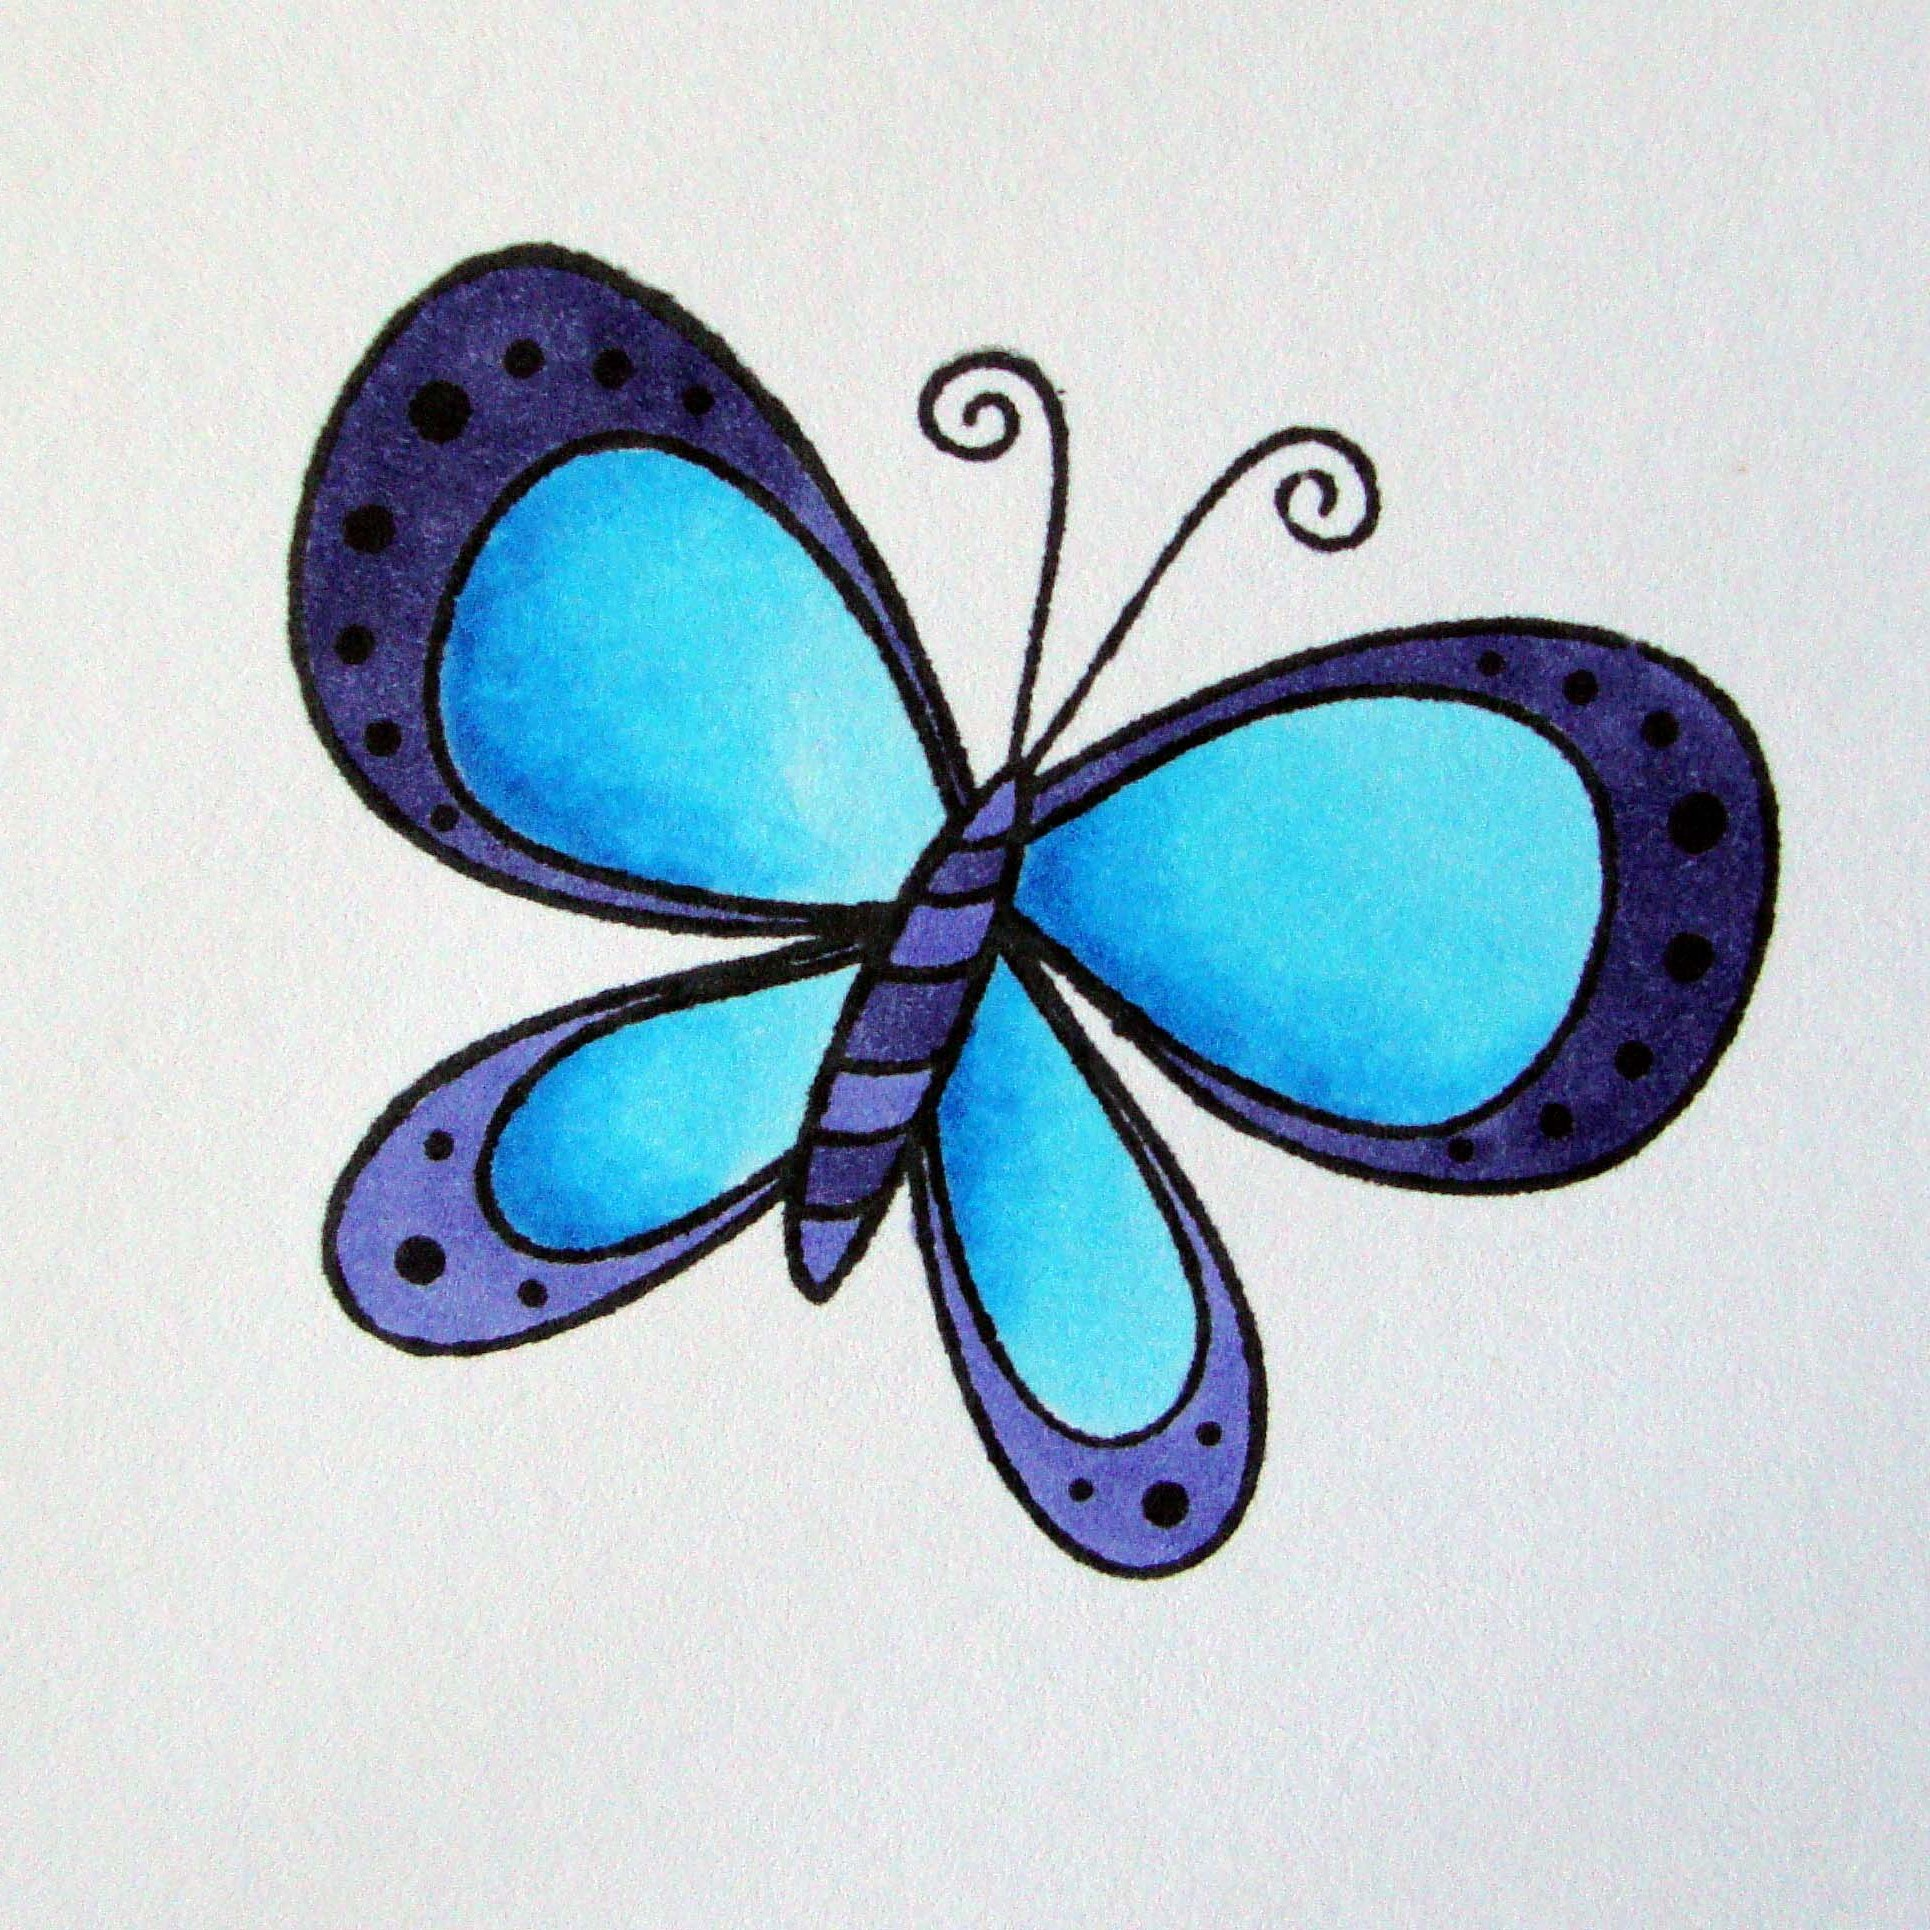 1930x1930 Full Color A Butterfly Free Monarch Drawing Download Clip Art